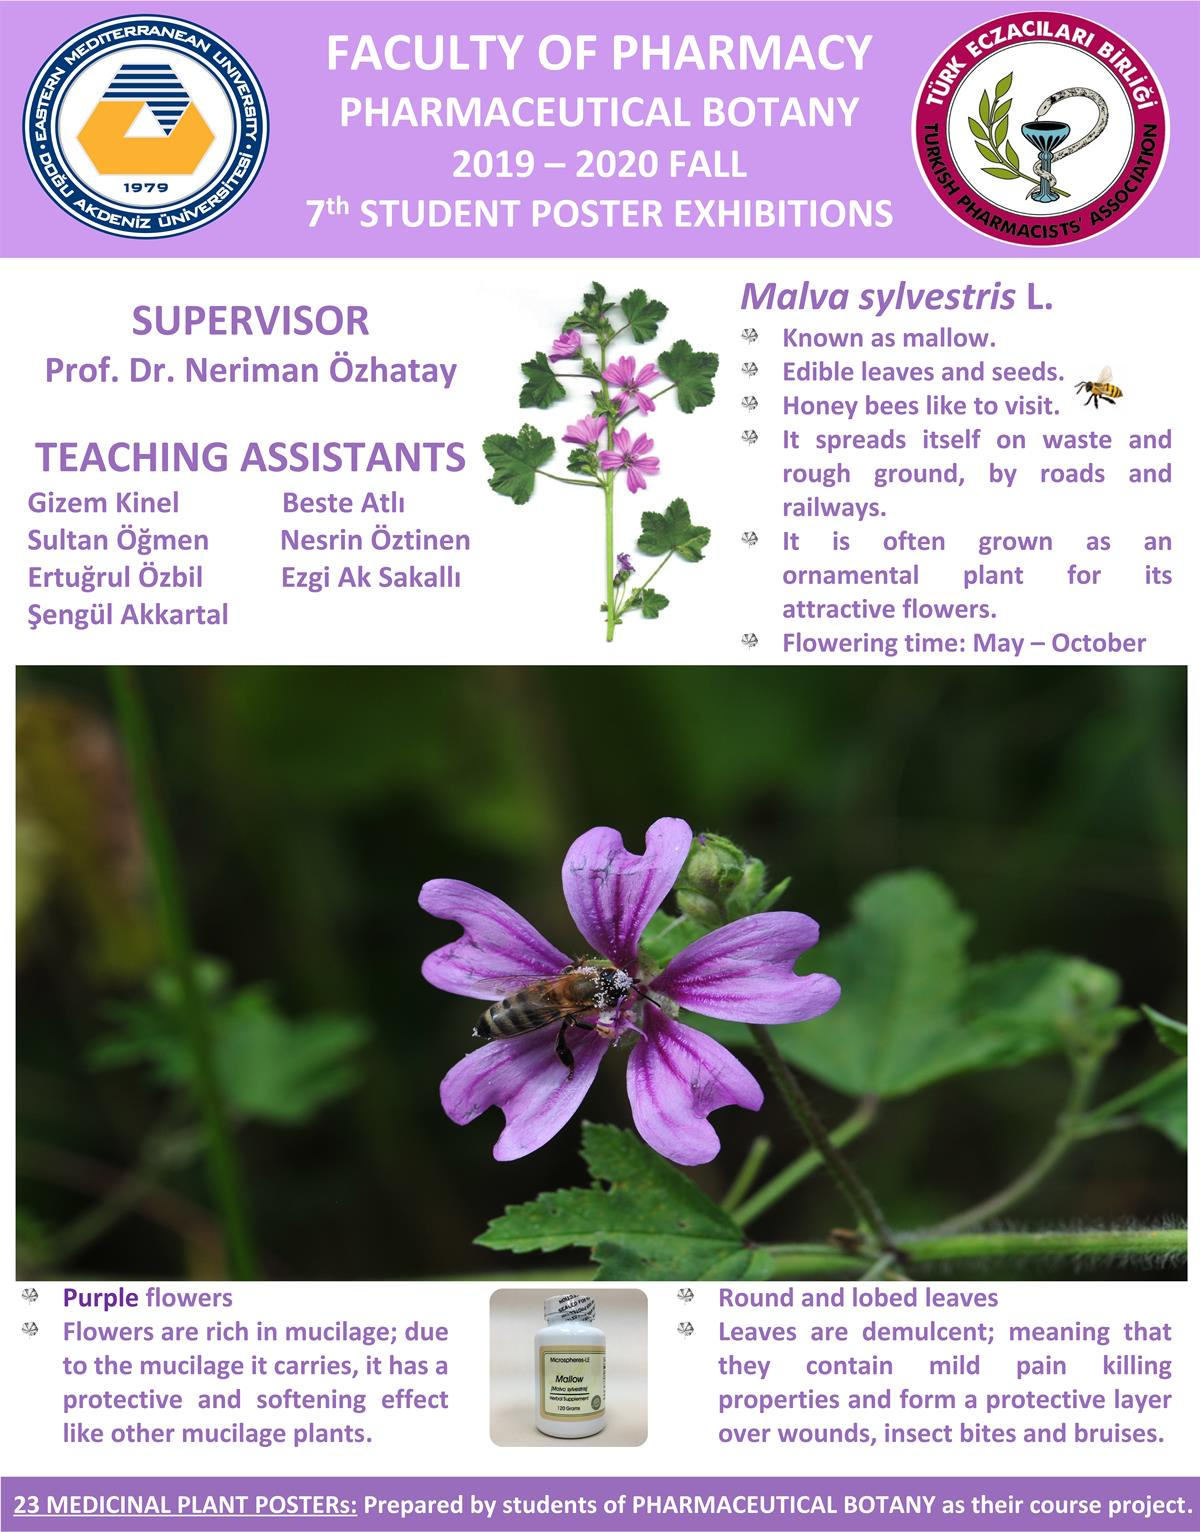 2019-2020 FALL 7th STUDENT POSTER EXHIBITIONS OF PHARMACEUTICAL BOTANY